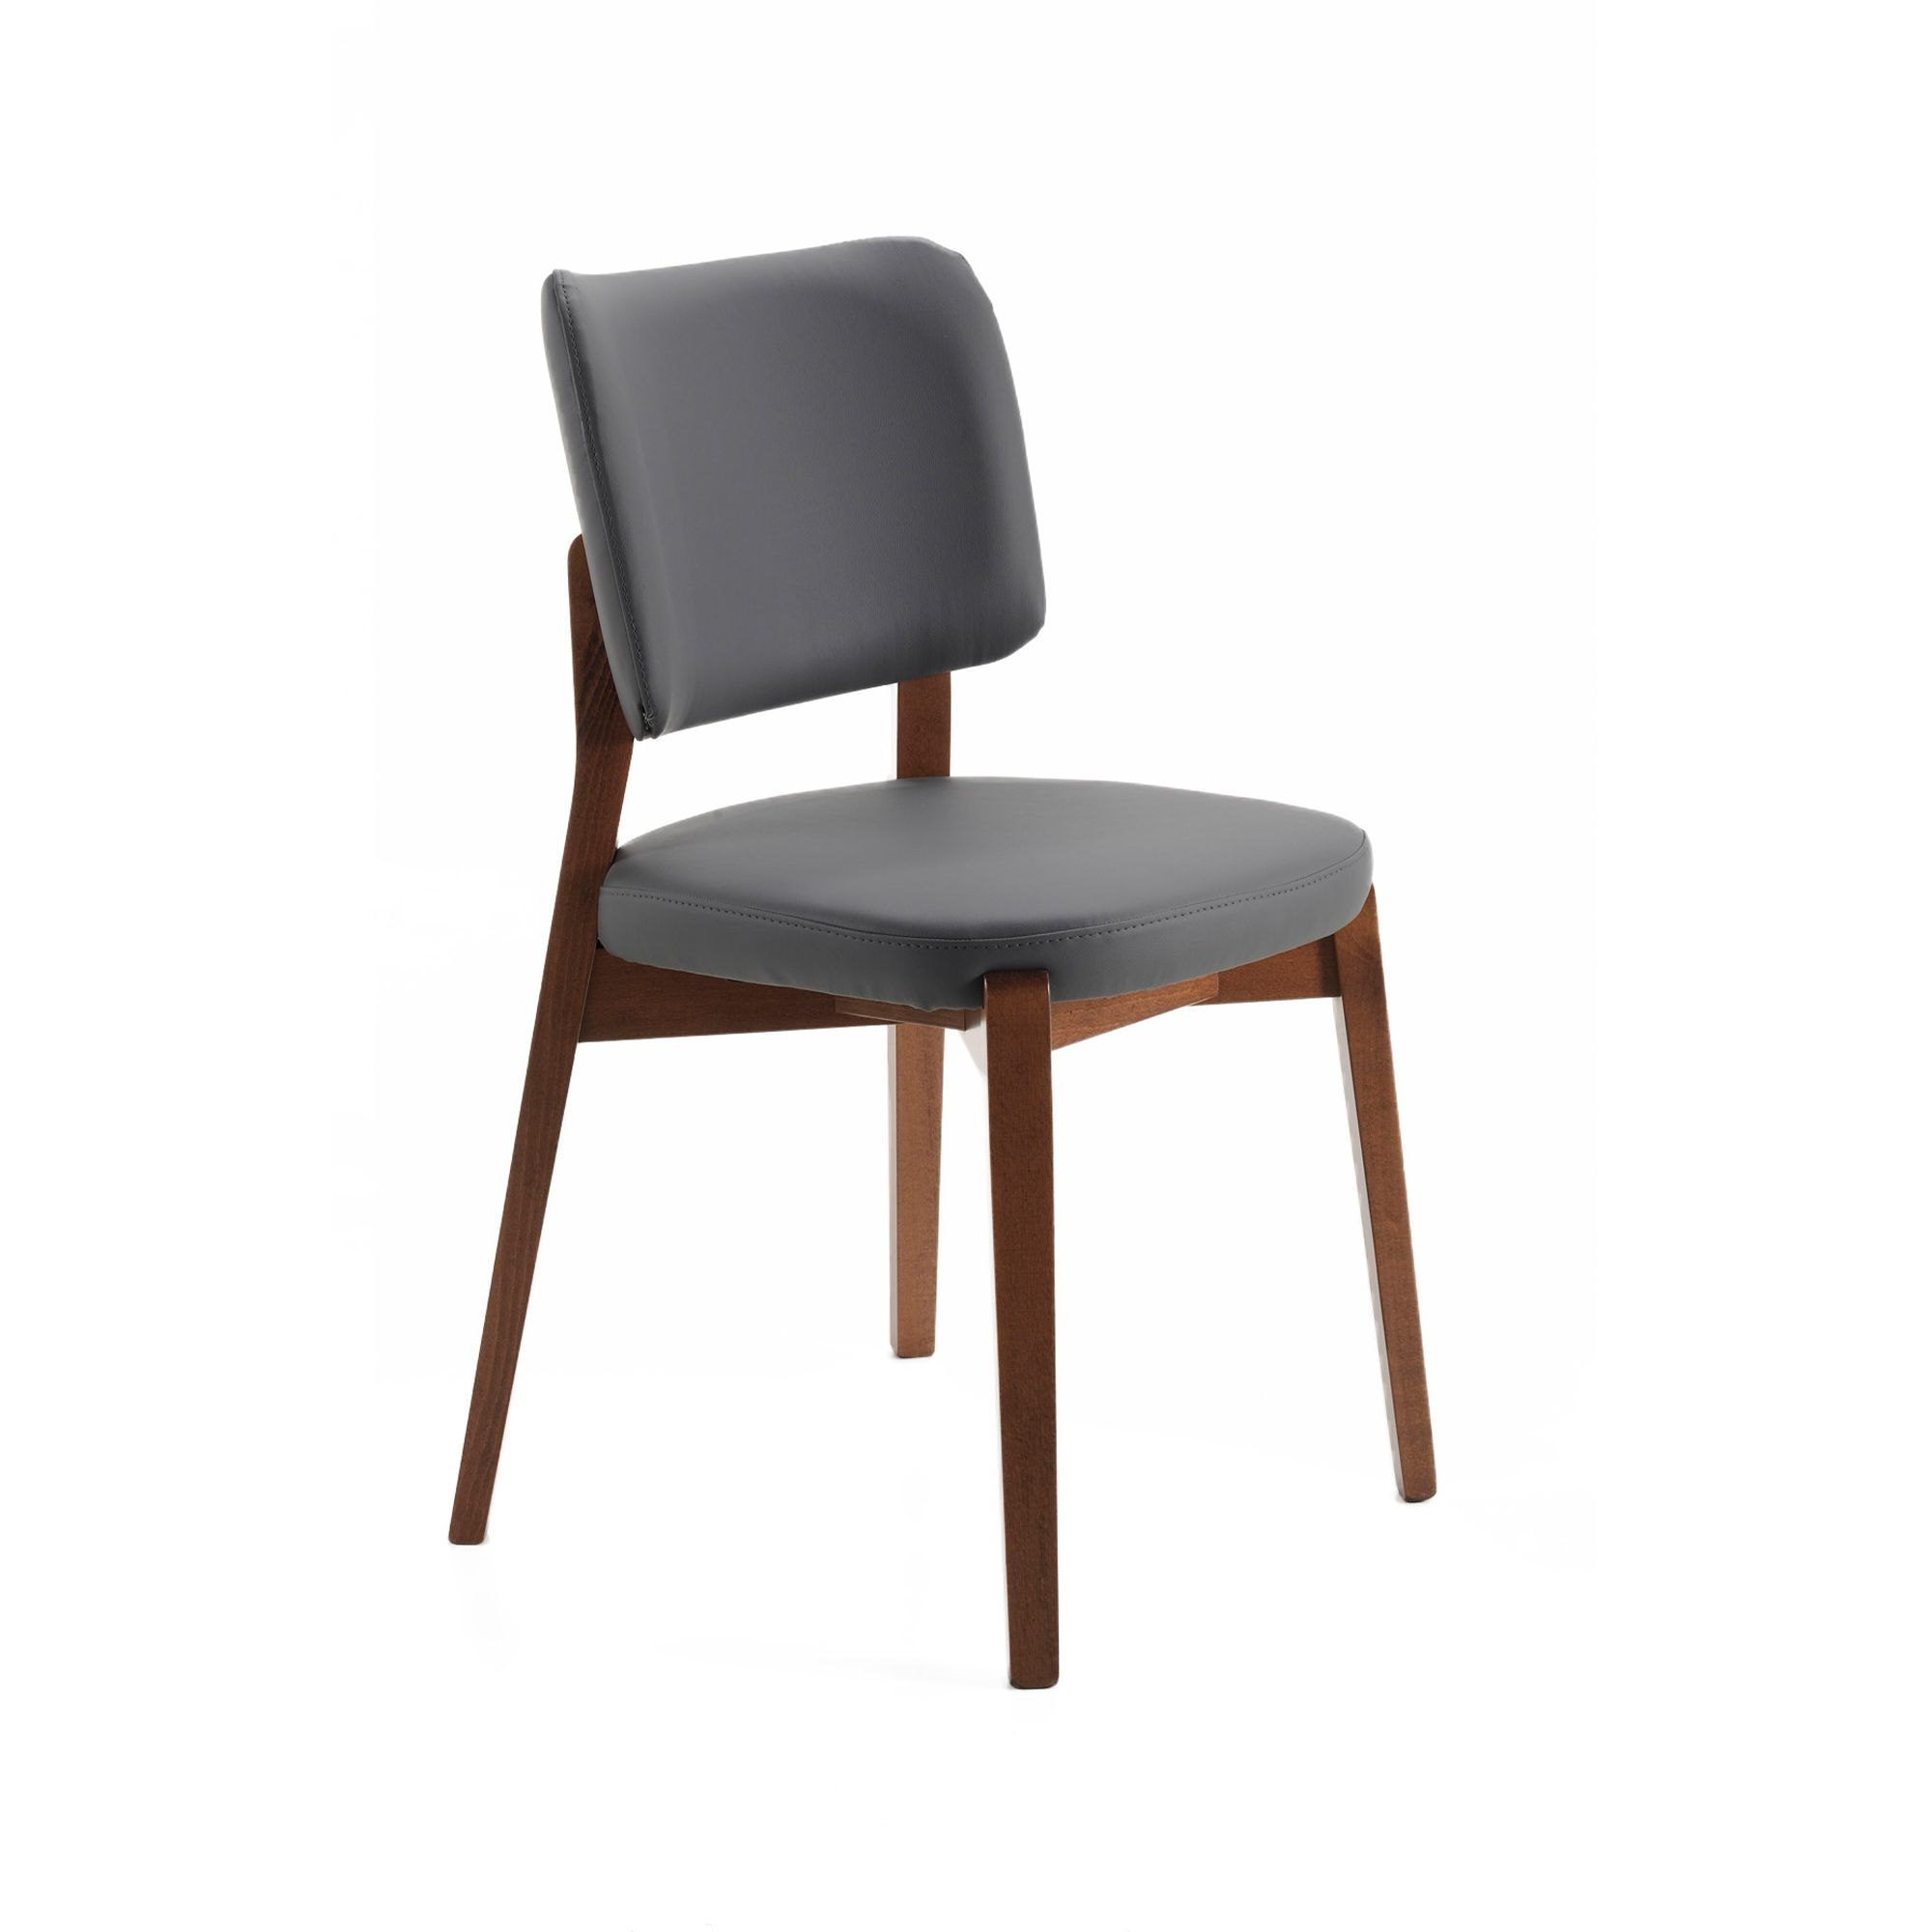 Model 853 chair in modern style